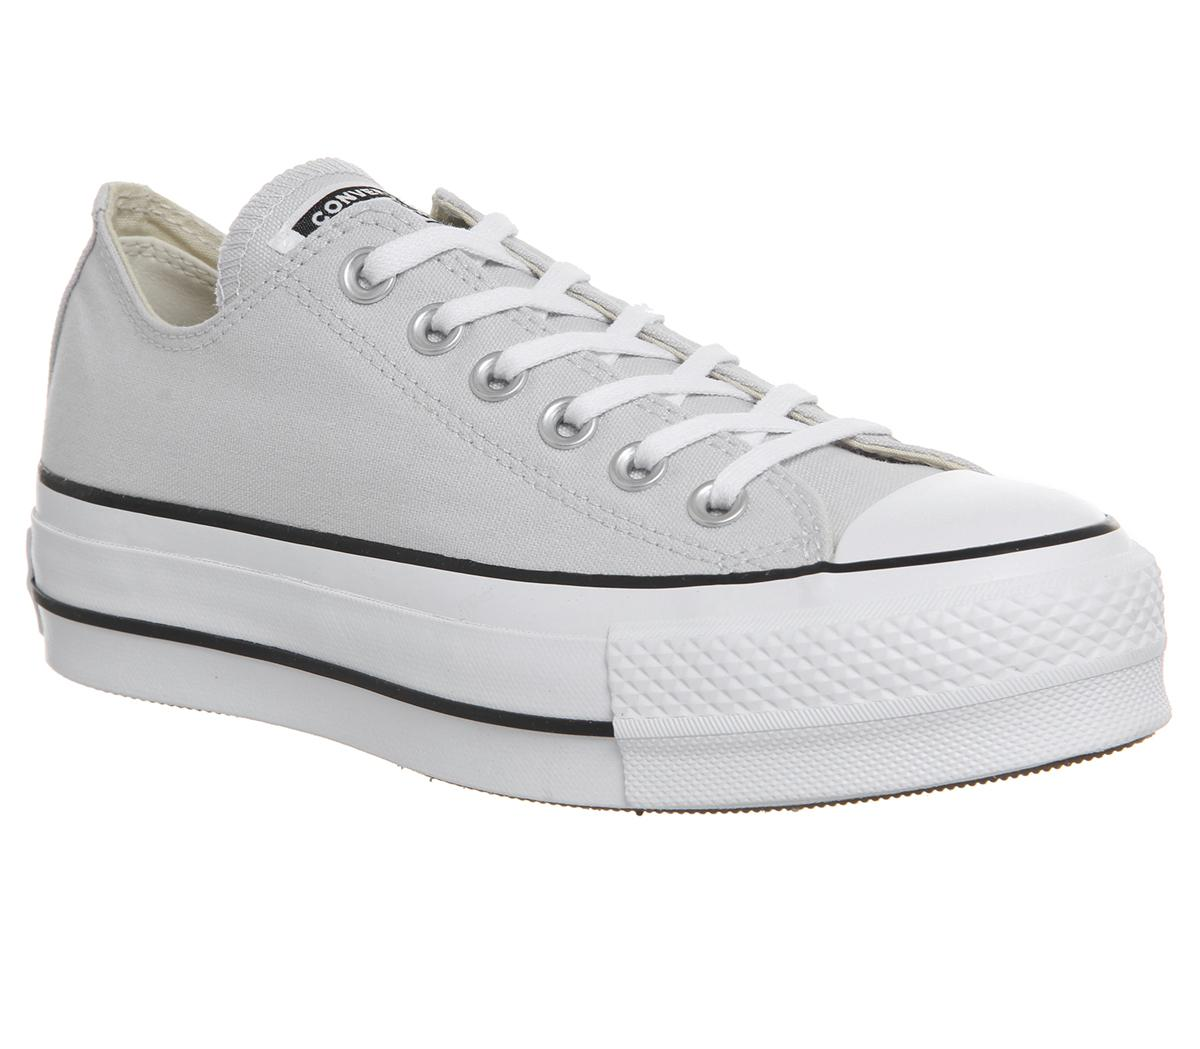 Pack para poner fumar campana  Converse All Star Lift Low Trainers Mouse White Black - Hers trainers